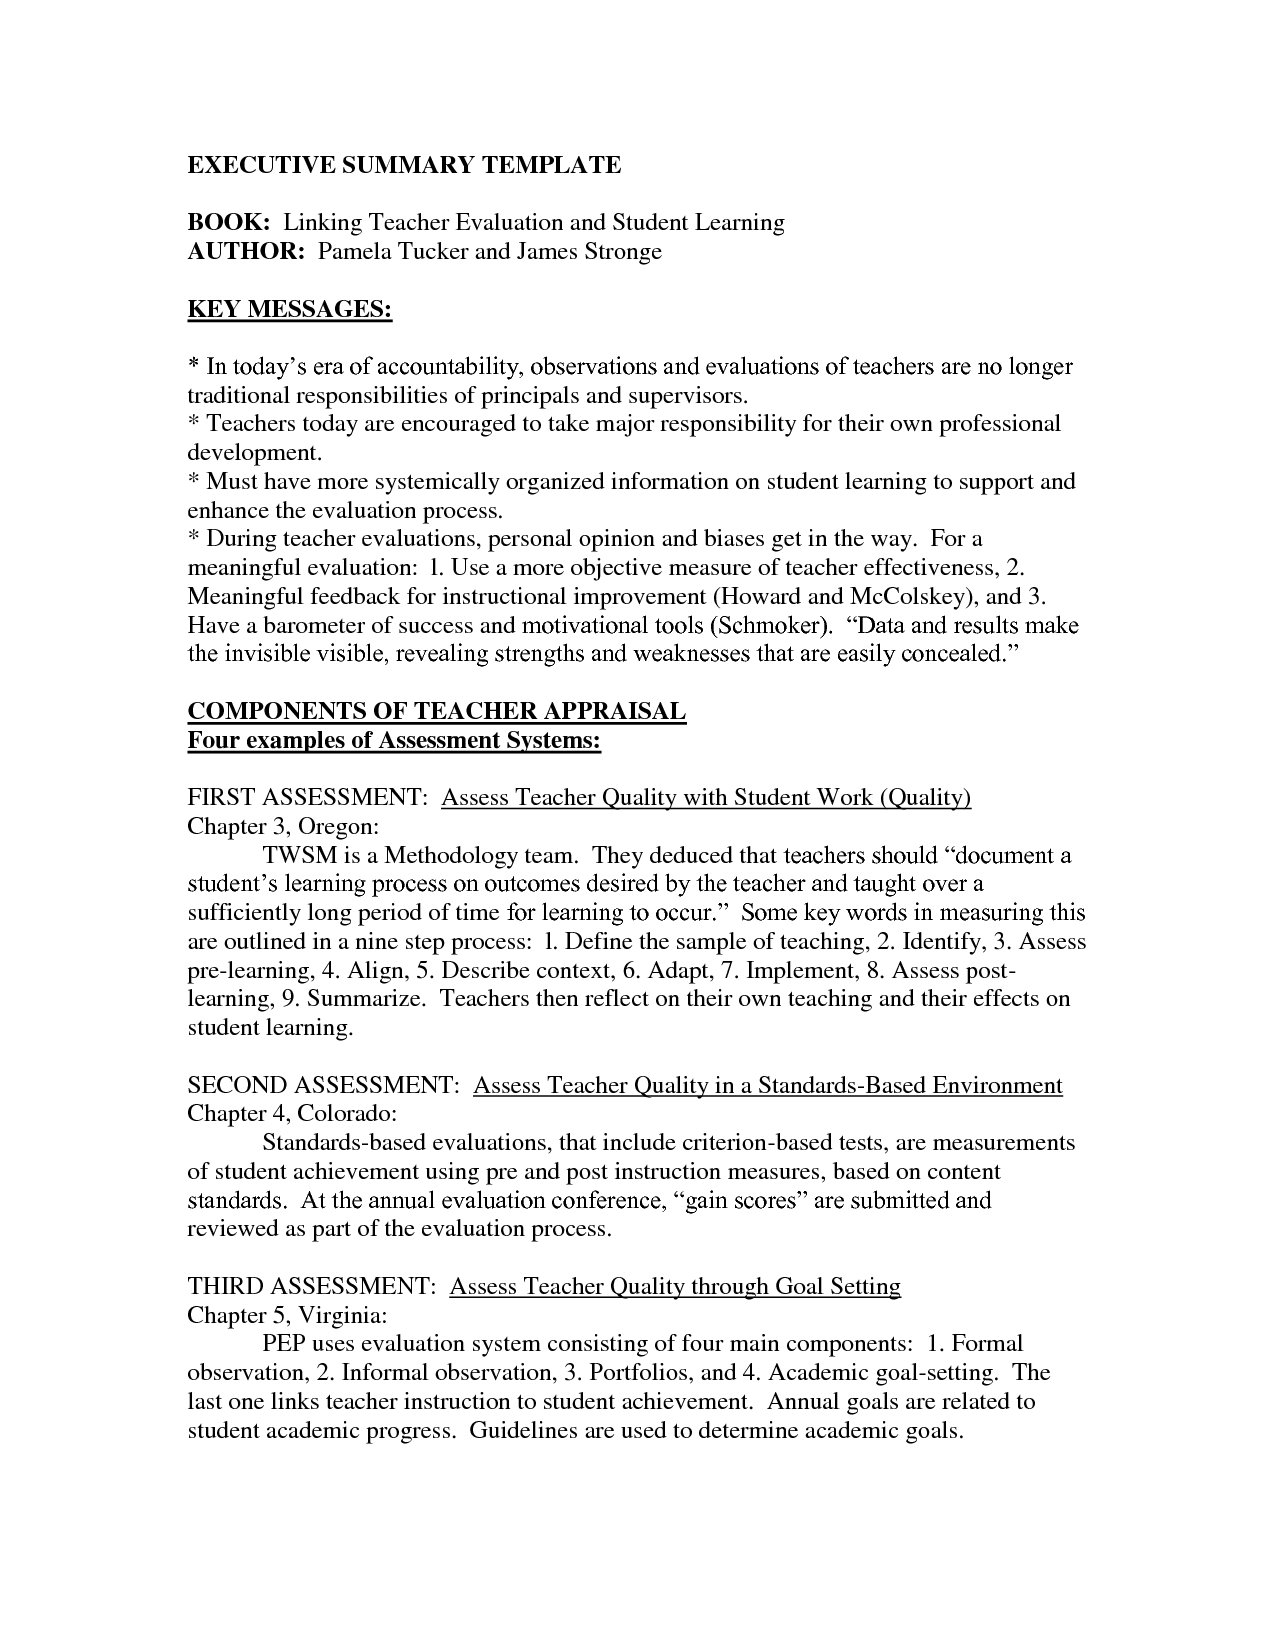 Word Executive Summary Template Resume Example Samples Pdf  How To Write An Effective Executive Summary